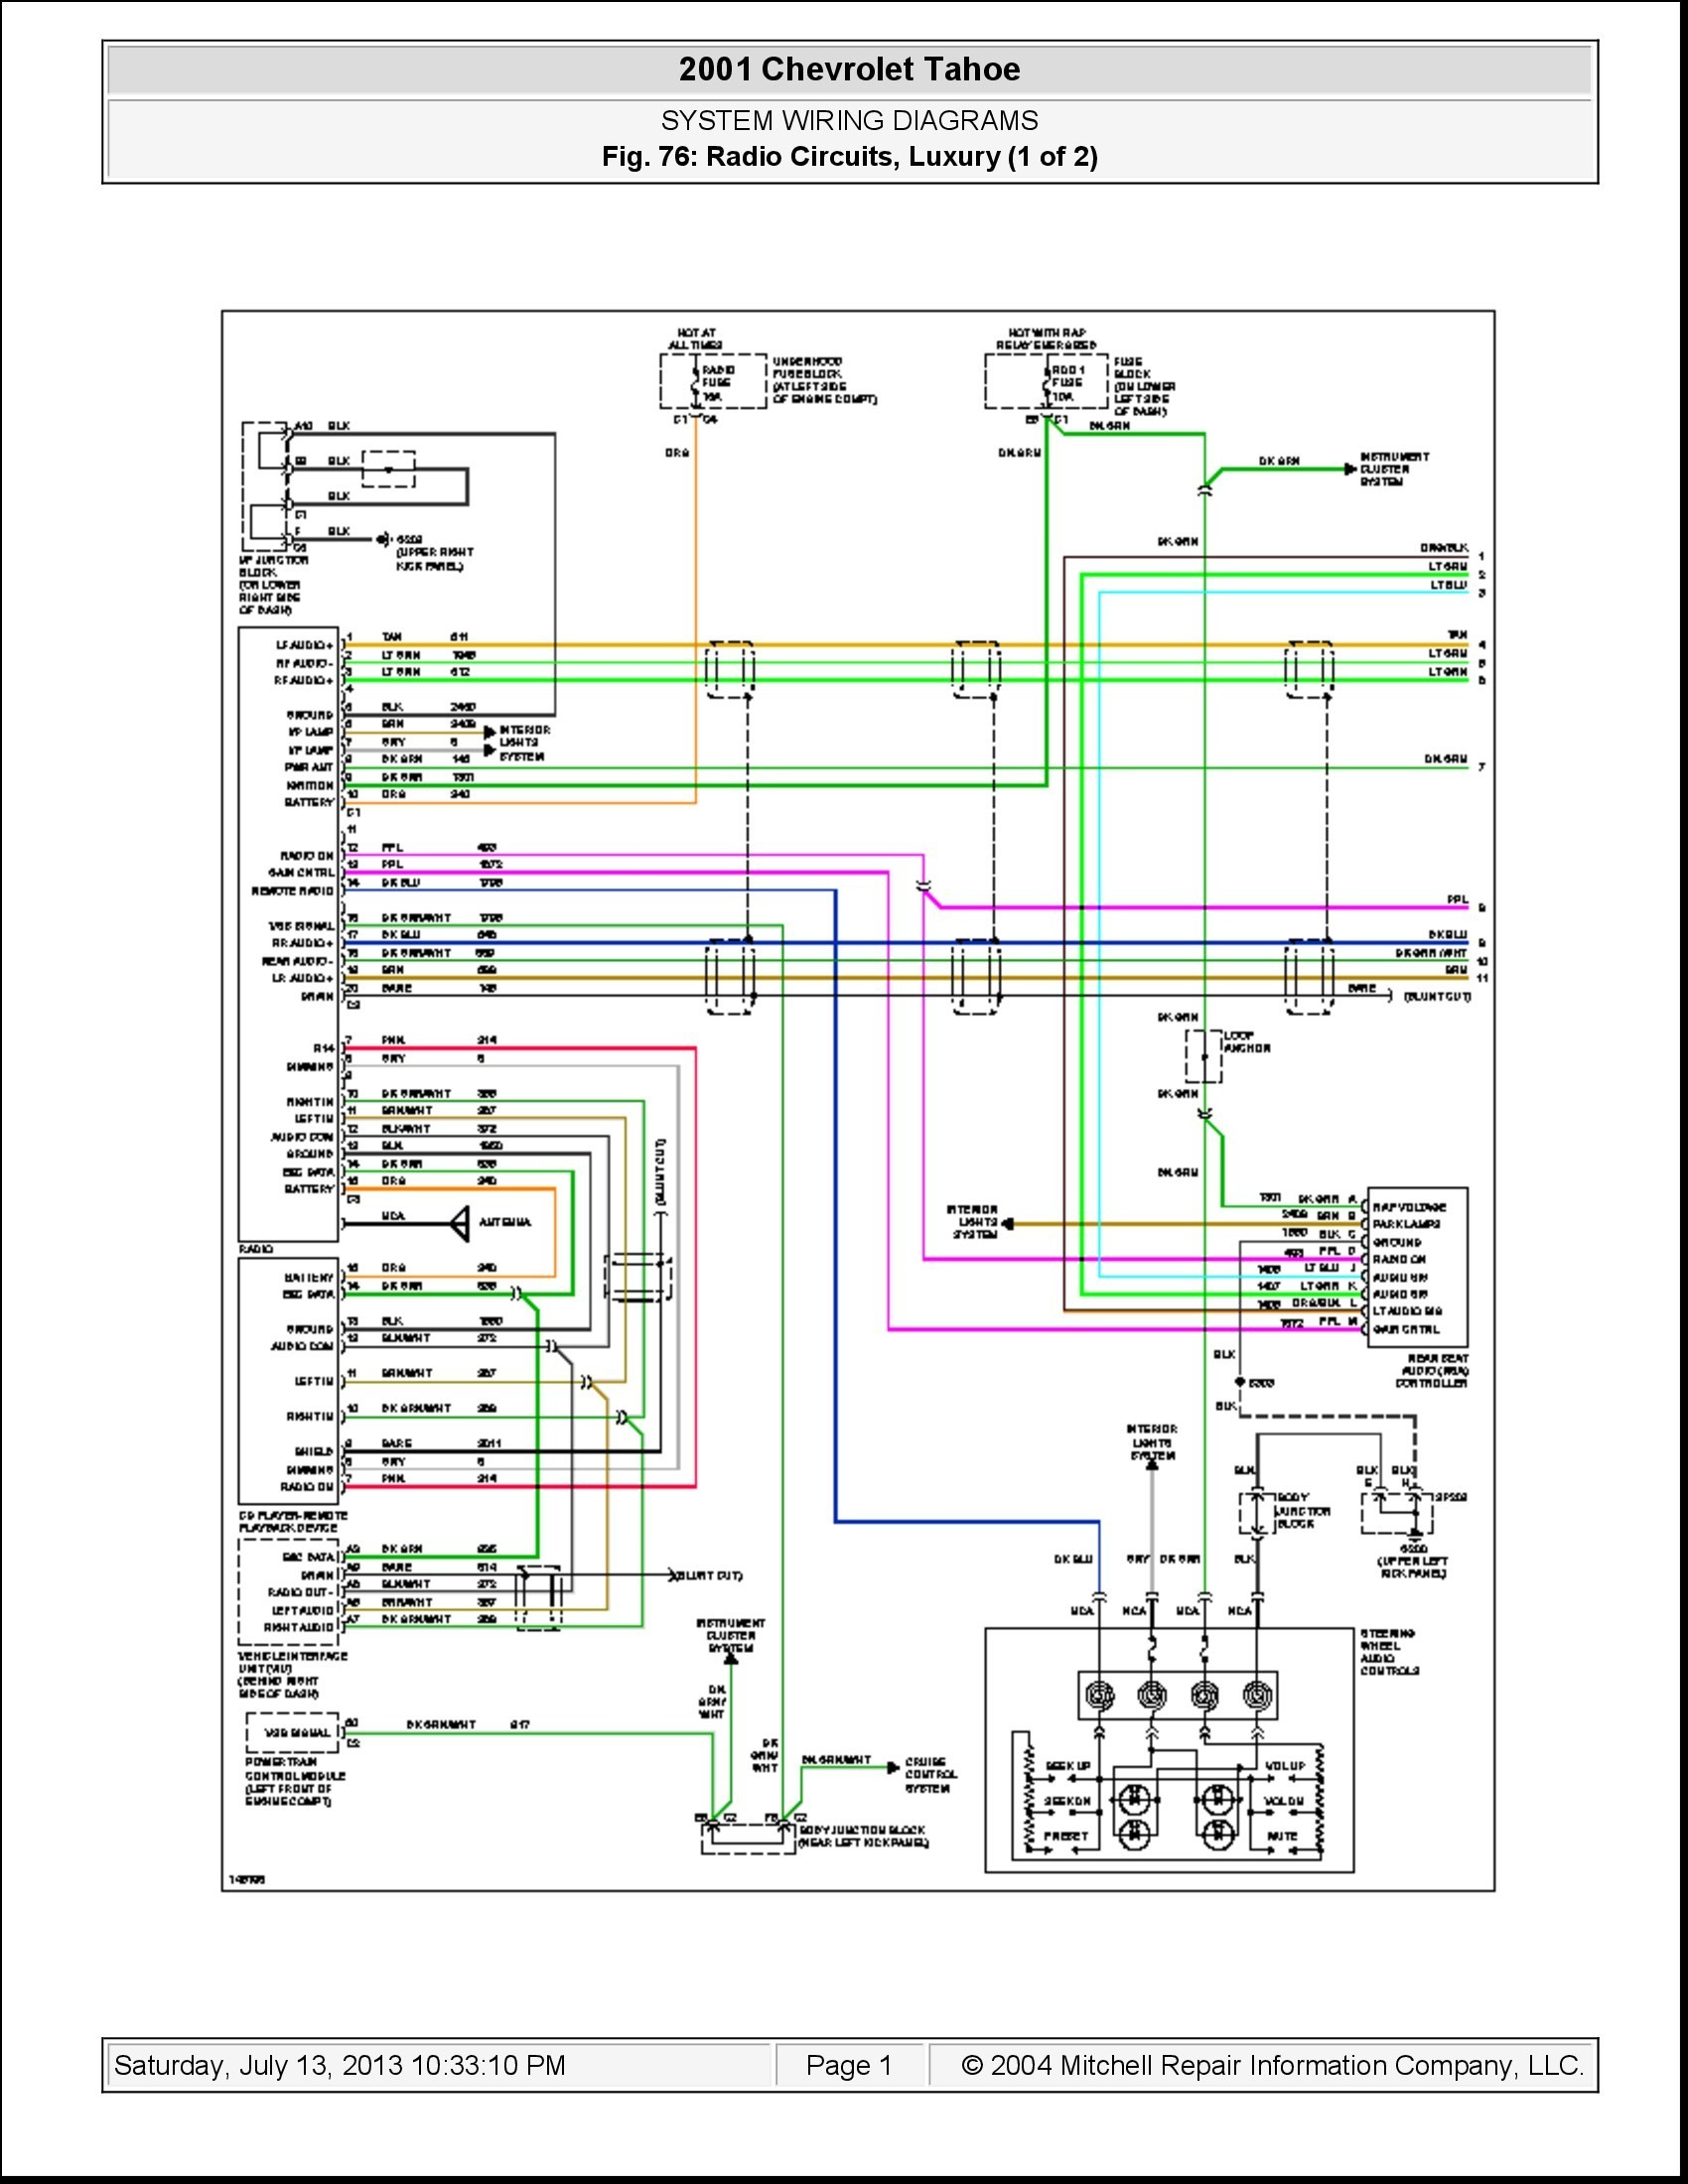 2009 Dodge Ram Wire Diagram - Horn Relay Wire Diagram -  dumbleee.lalu.decorresine.itWiring Diagram Resource